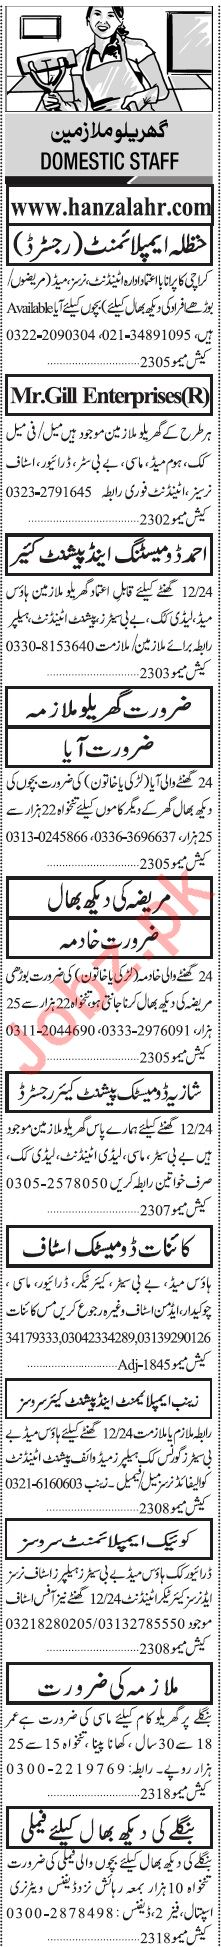 Jang Sunday Classified Ads 26 Jan 2020 for Domestic Staff